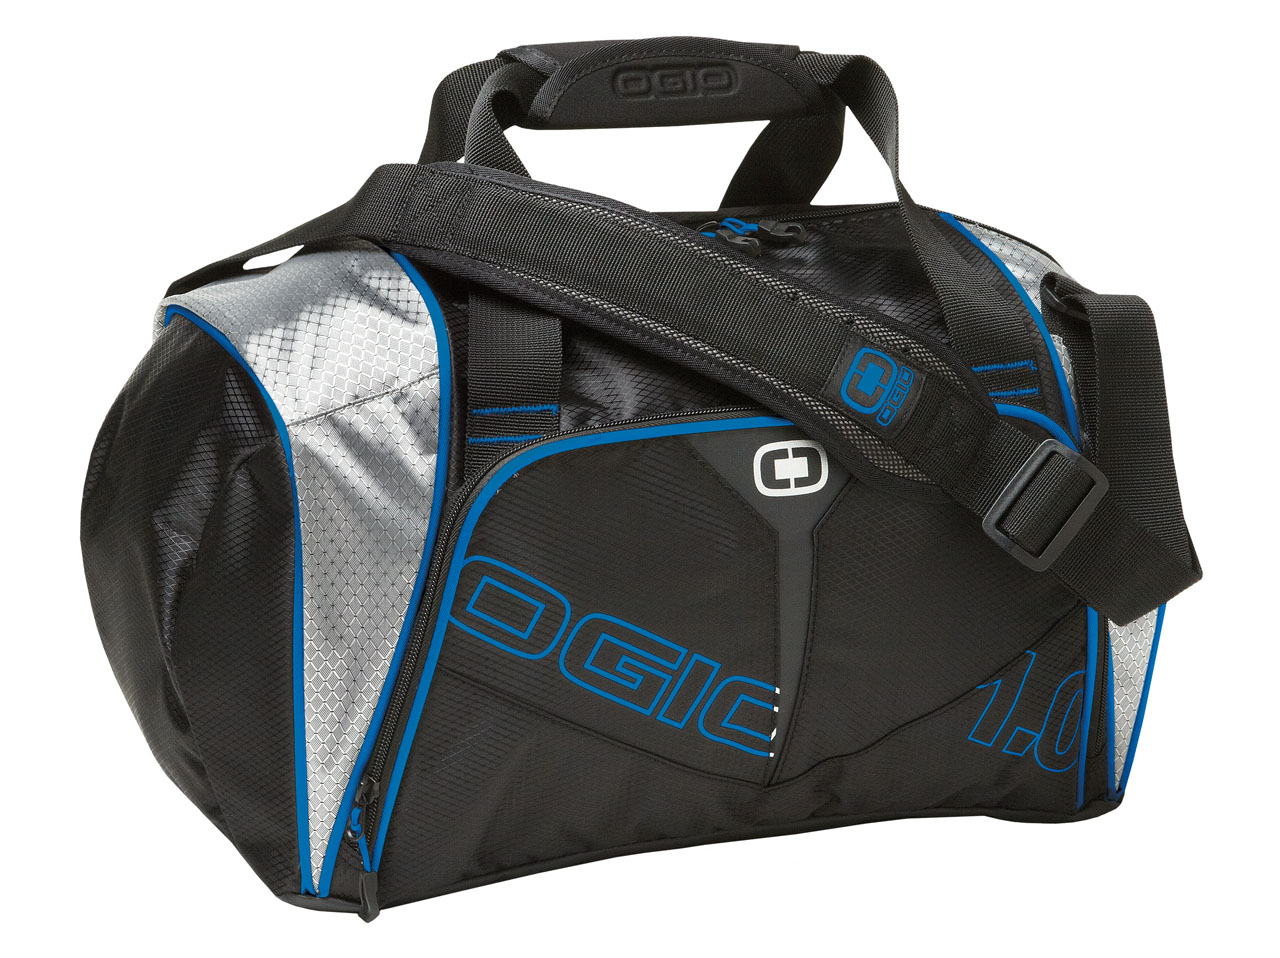 Picture of OGIO Endurance 1.0 Duffel